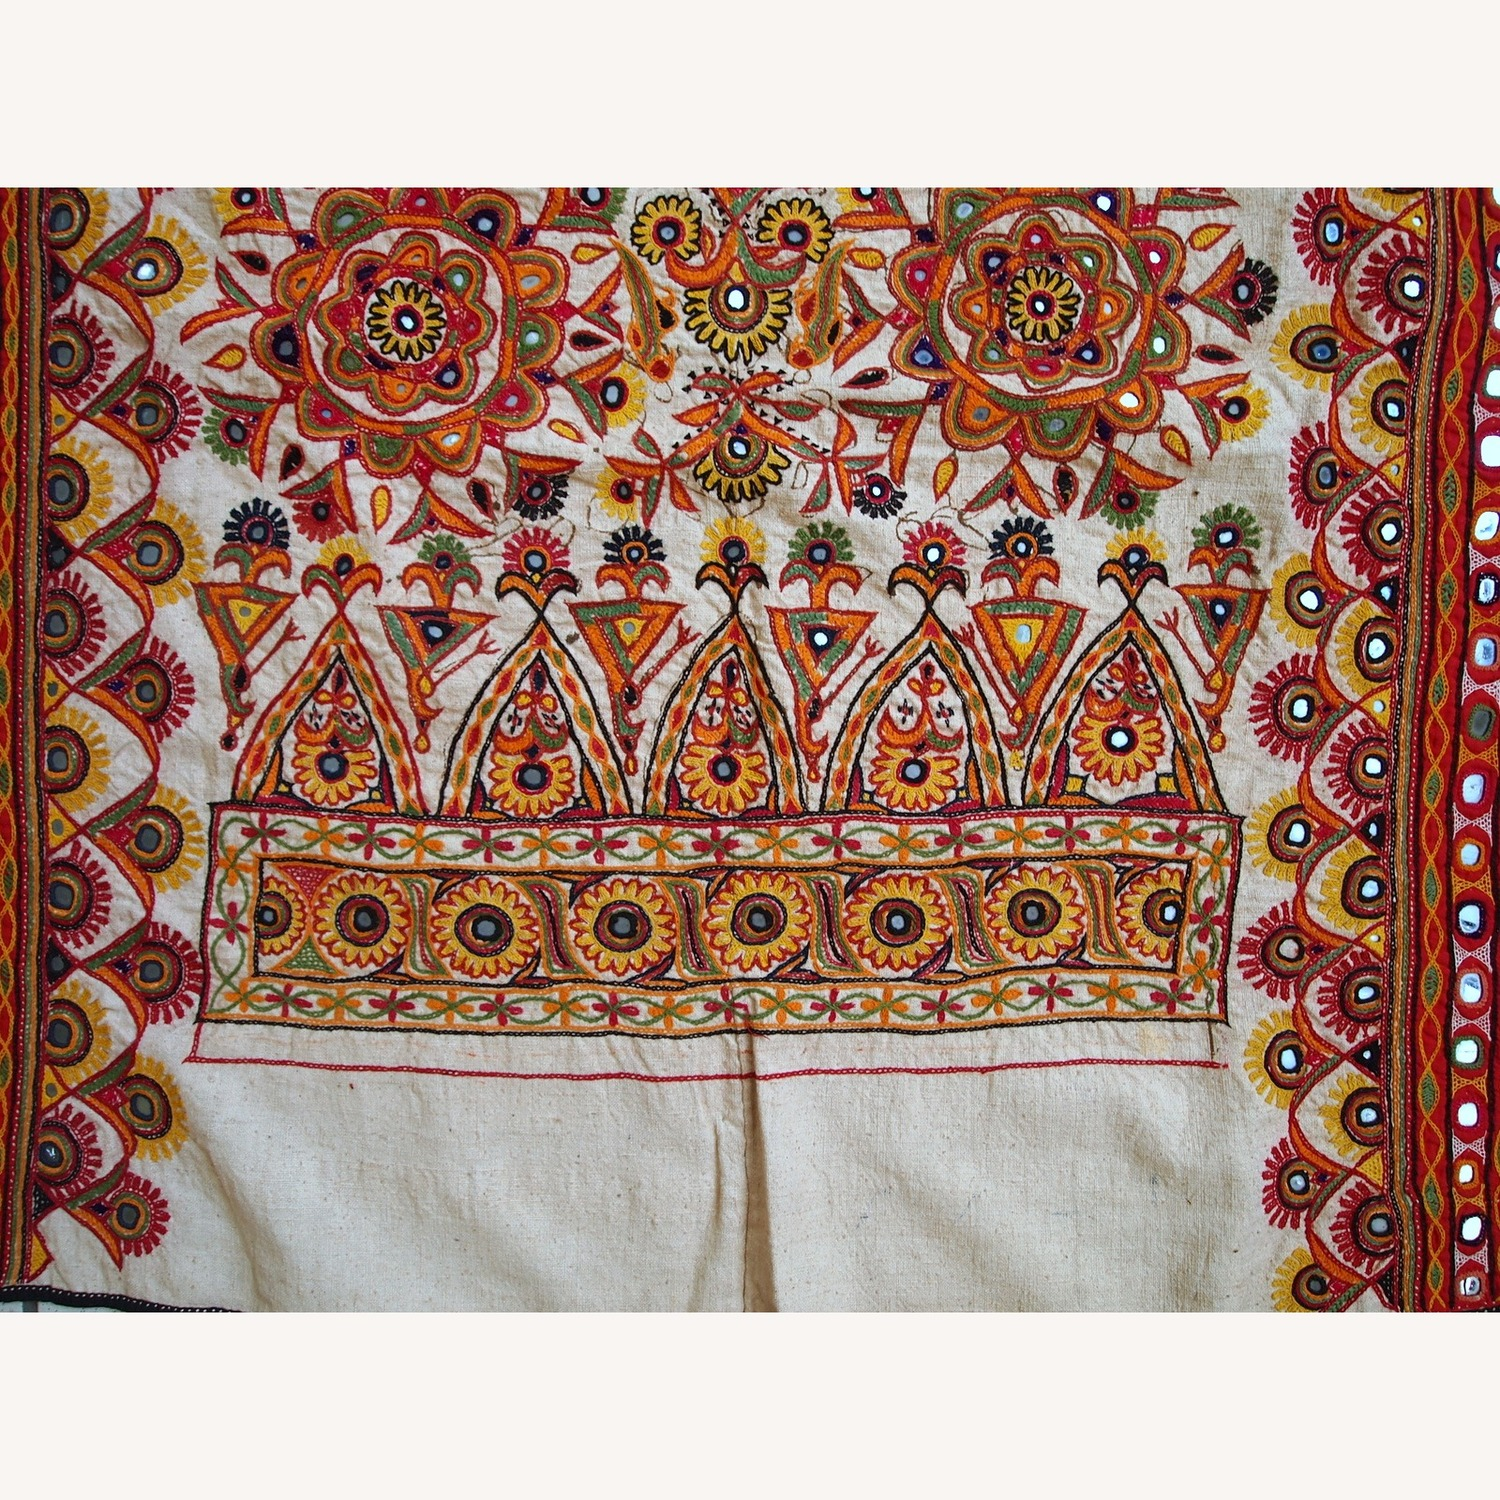 Handmade Indian Wall Hanging Embroidered Tapestry - image-12